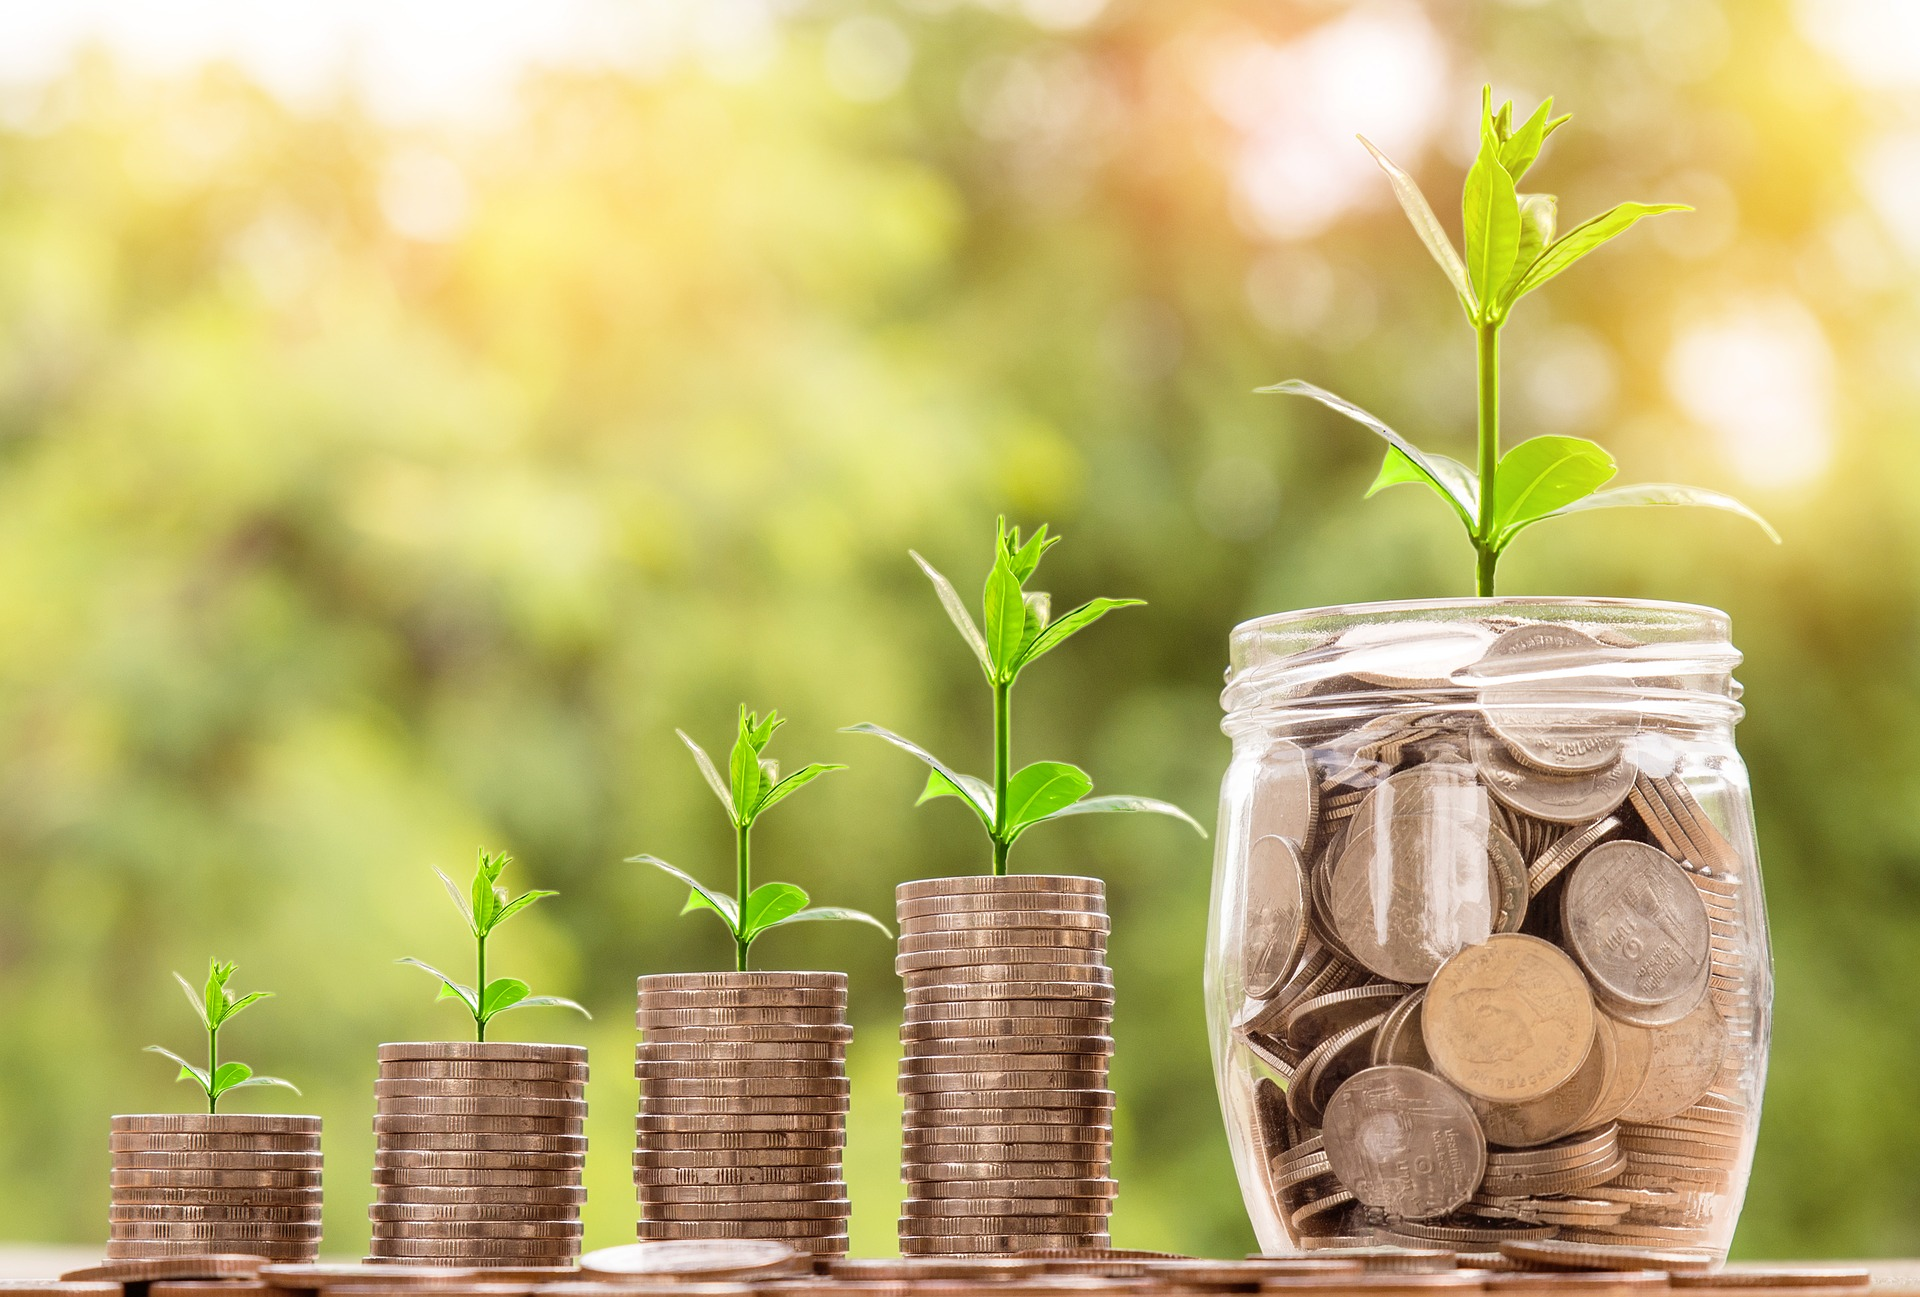 fundraising though grants provides growth